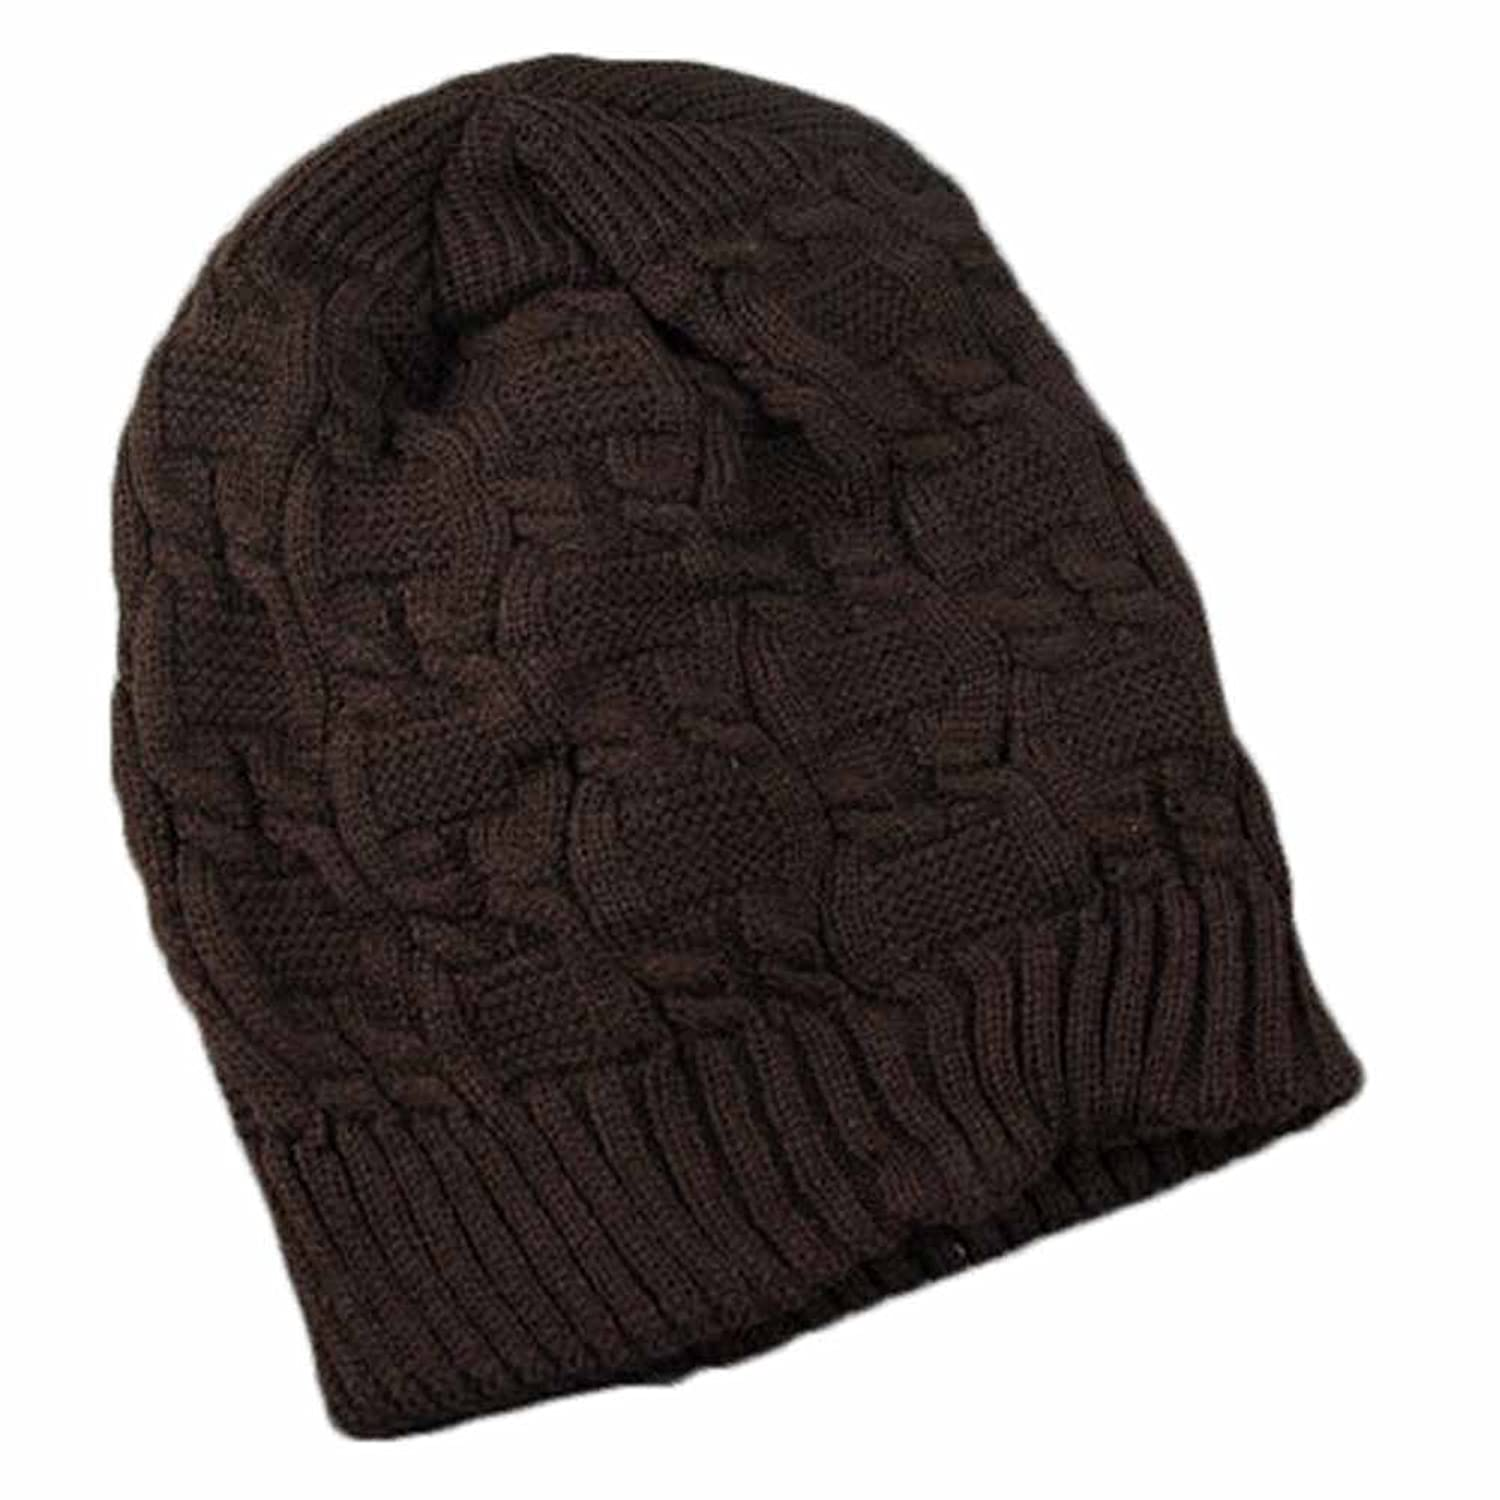 Surker Korean Small Twist Knitted Thickened Double-Layer Hat CL02019